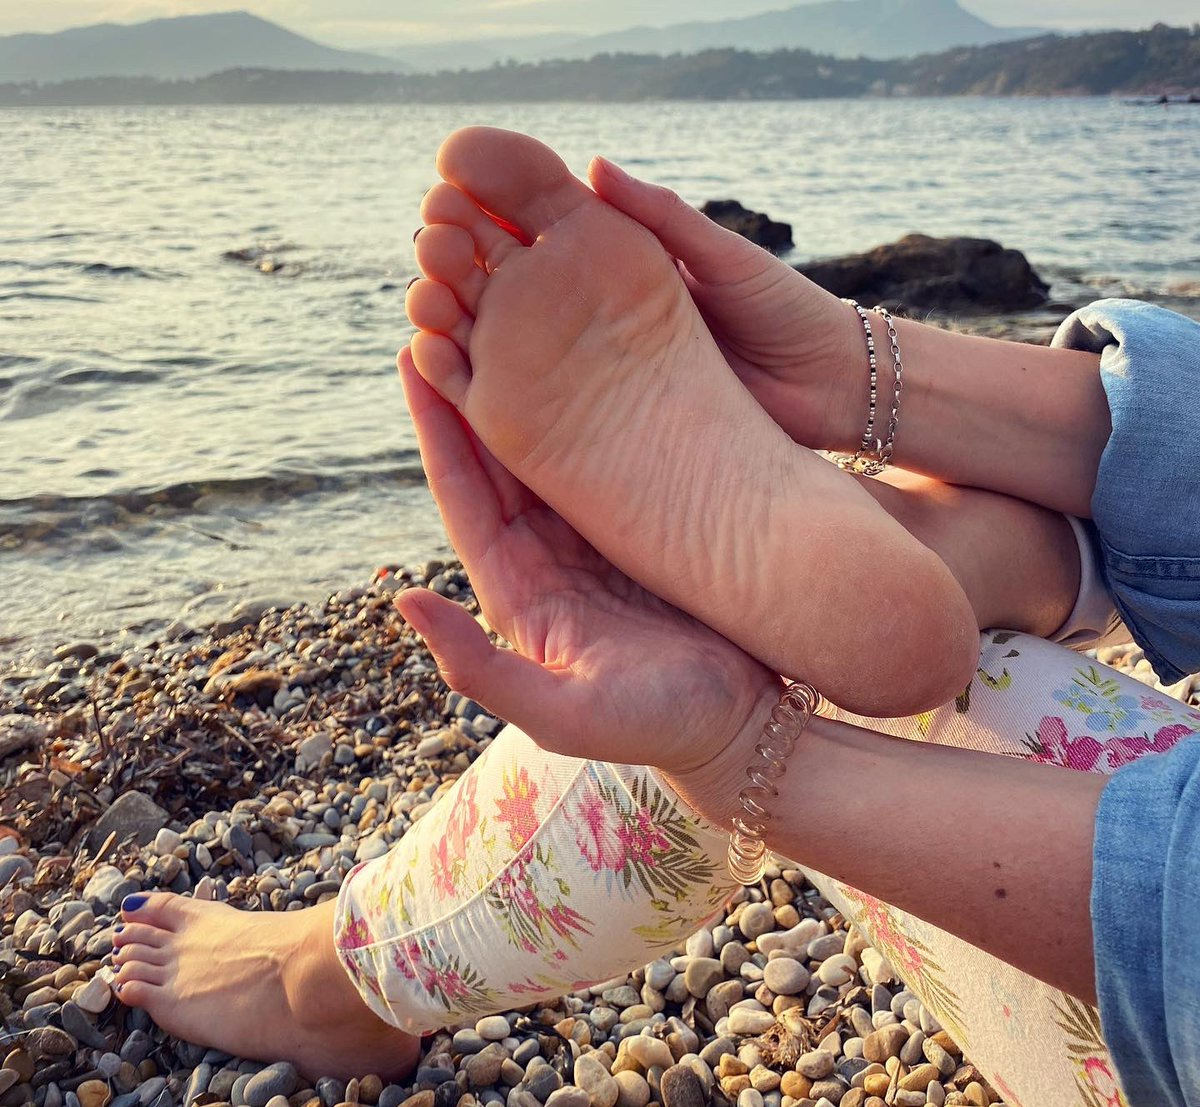 Always soles ... ^^ #lolafeetgirl #feet #pieds #foot #soles #plage #confinement #plantedepieds #pies #piedi #beach #french #girl #Feetfettish #cutesoles #toes #sexysolespic.twitter.com/nIl7RgFzOO